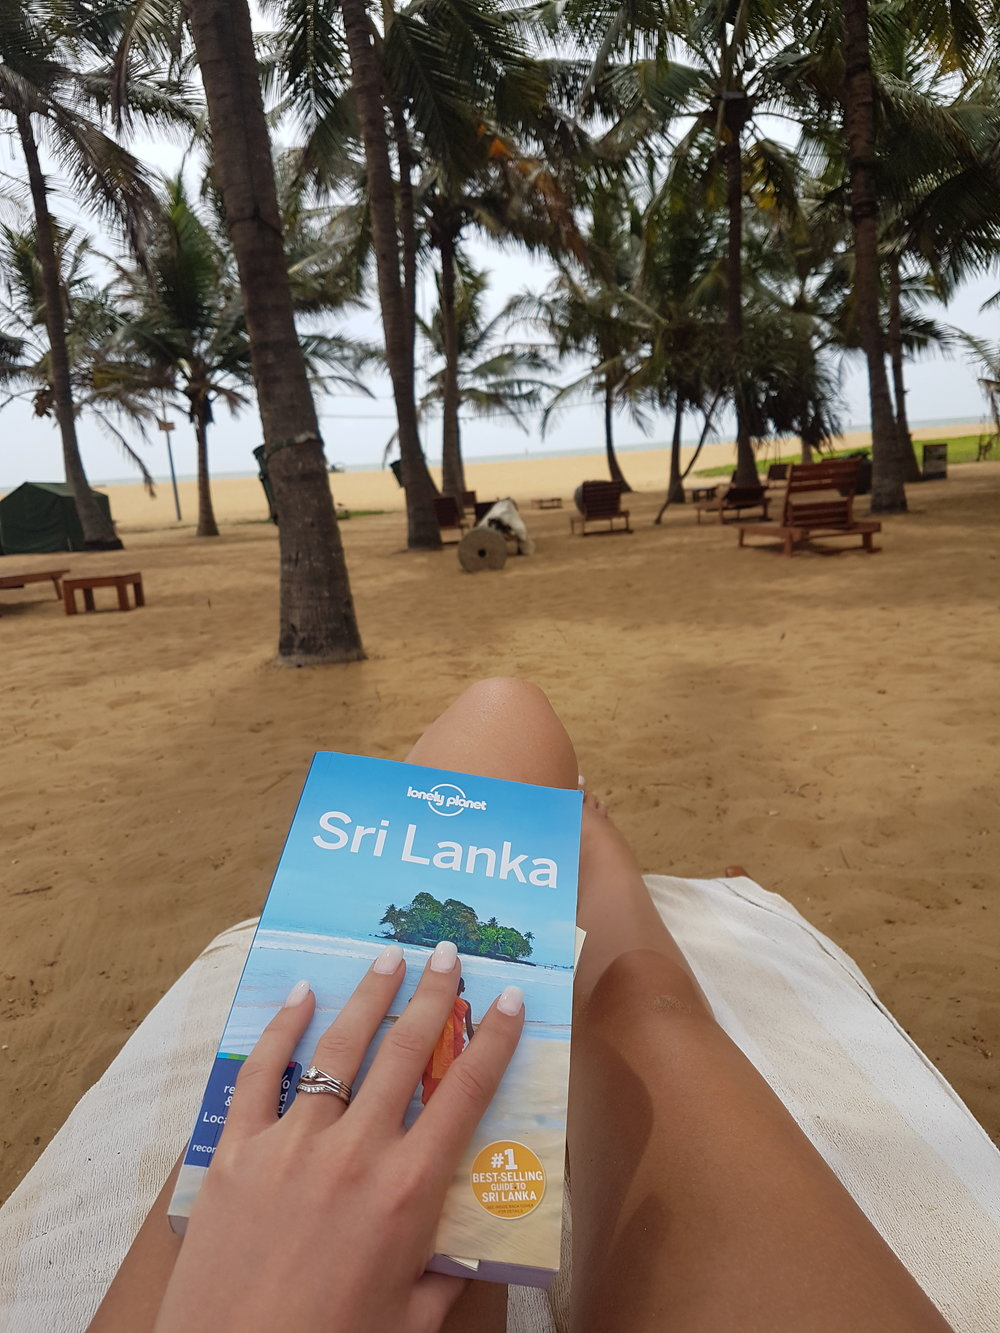 invite-to-paradise-sri-lanka-holiday-honeymoon-specialists-customer-feedback-fleur-simon-minshull-beach-lonely-planet.jpg